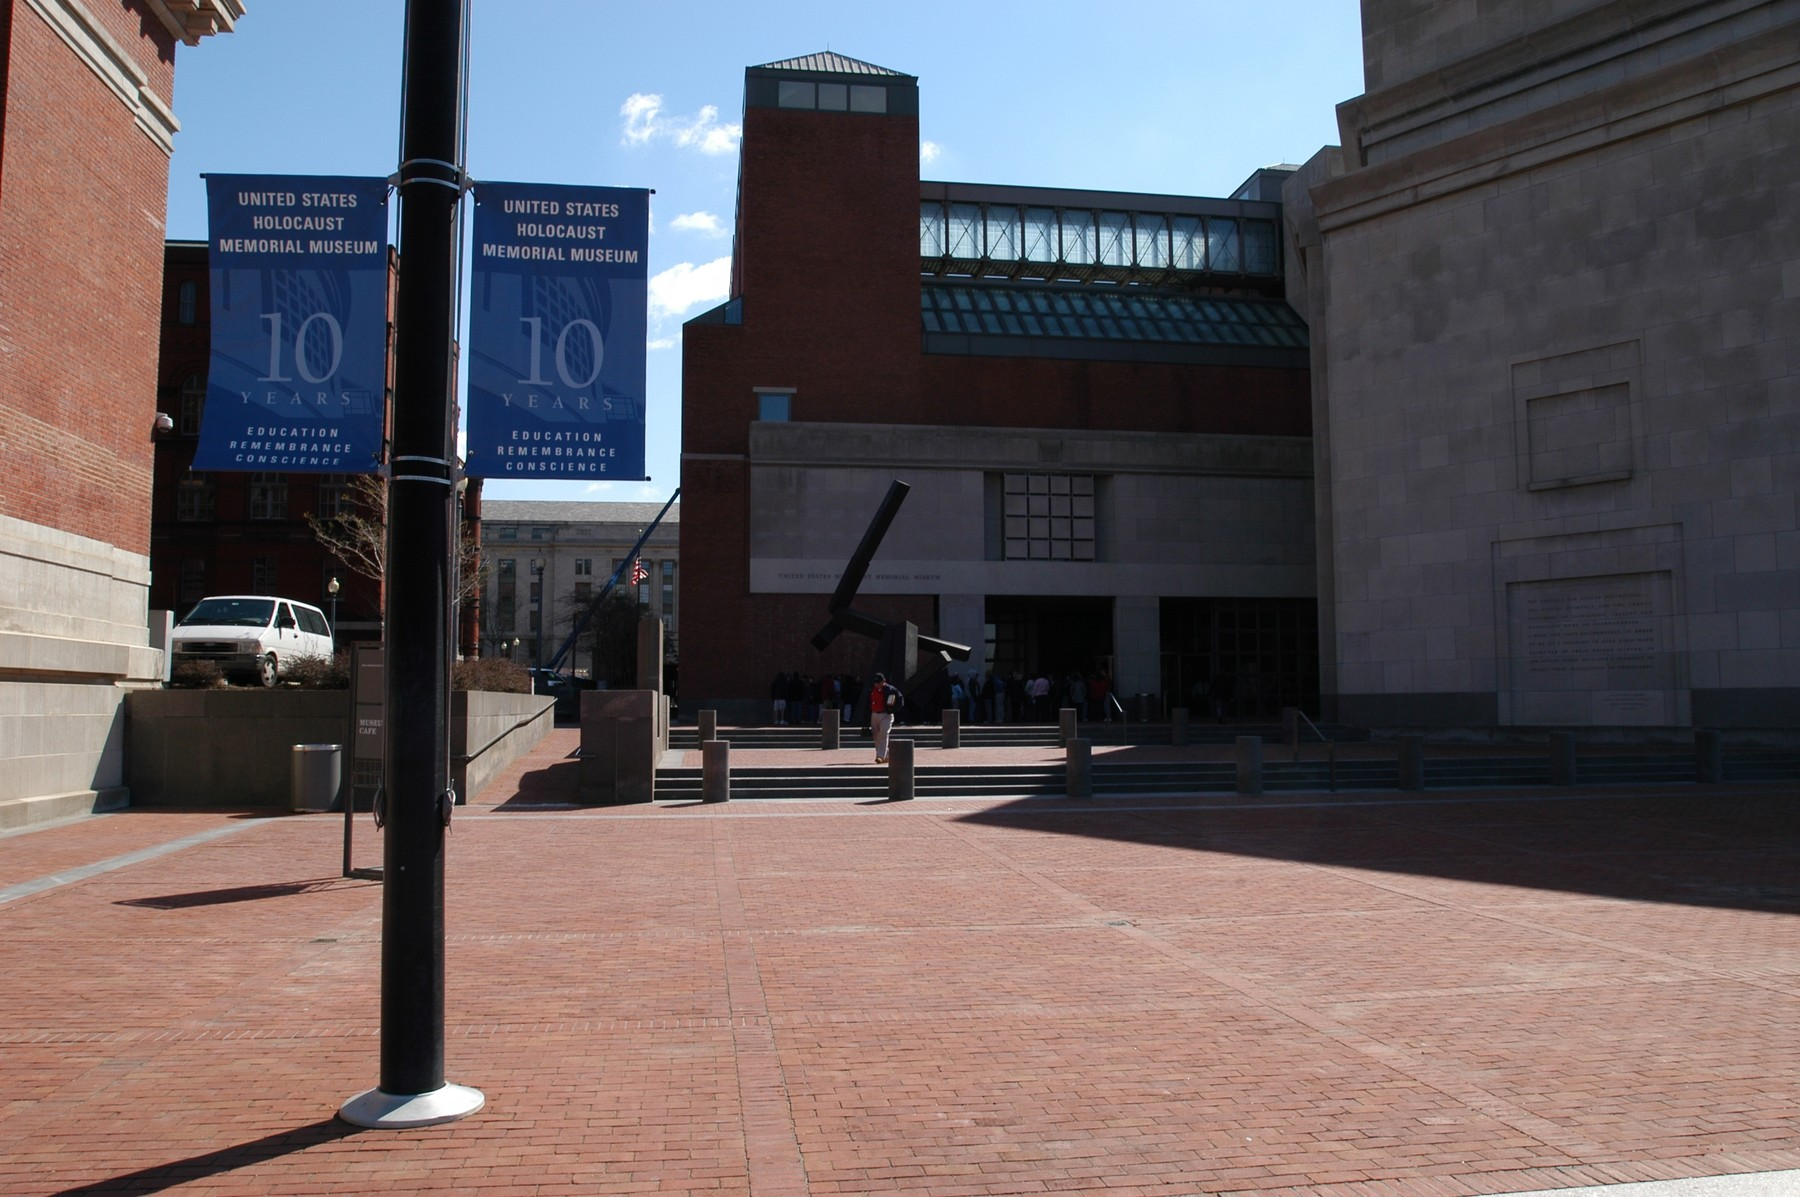 10th Anniversary banners on Eisenhower Plaza, U.S. Holocaust Memorial Museum.